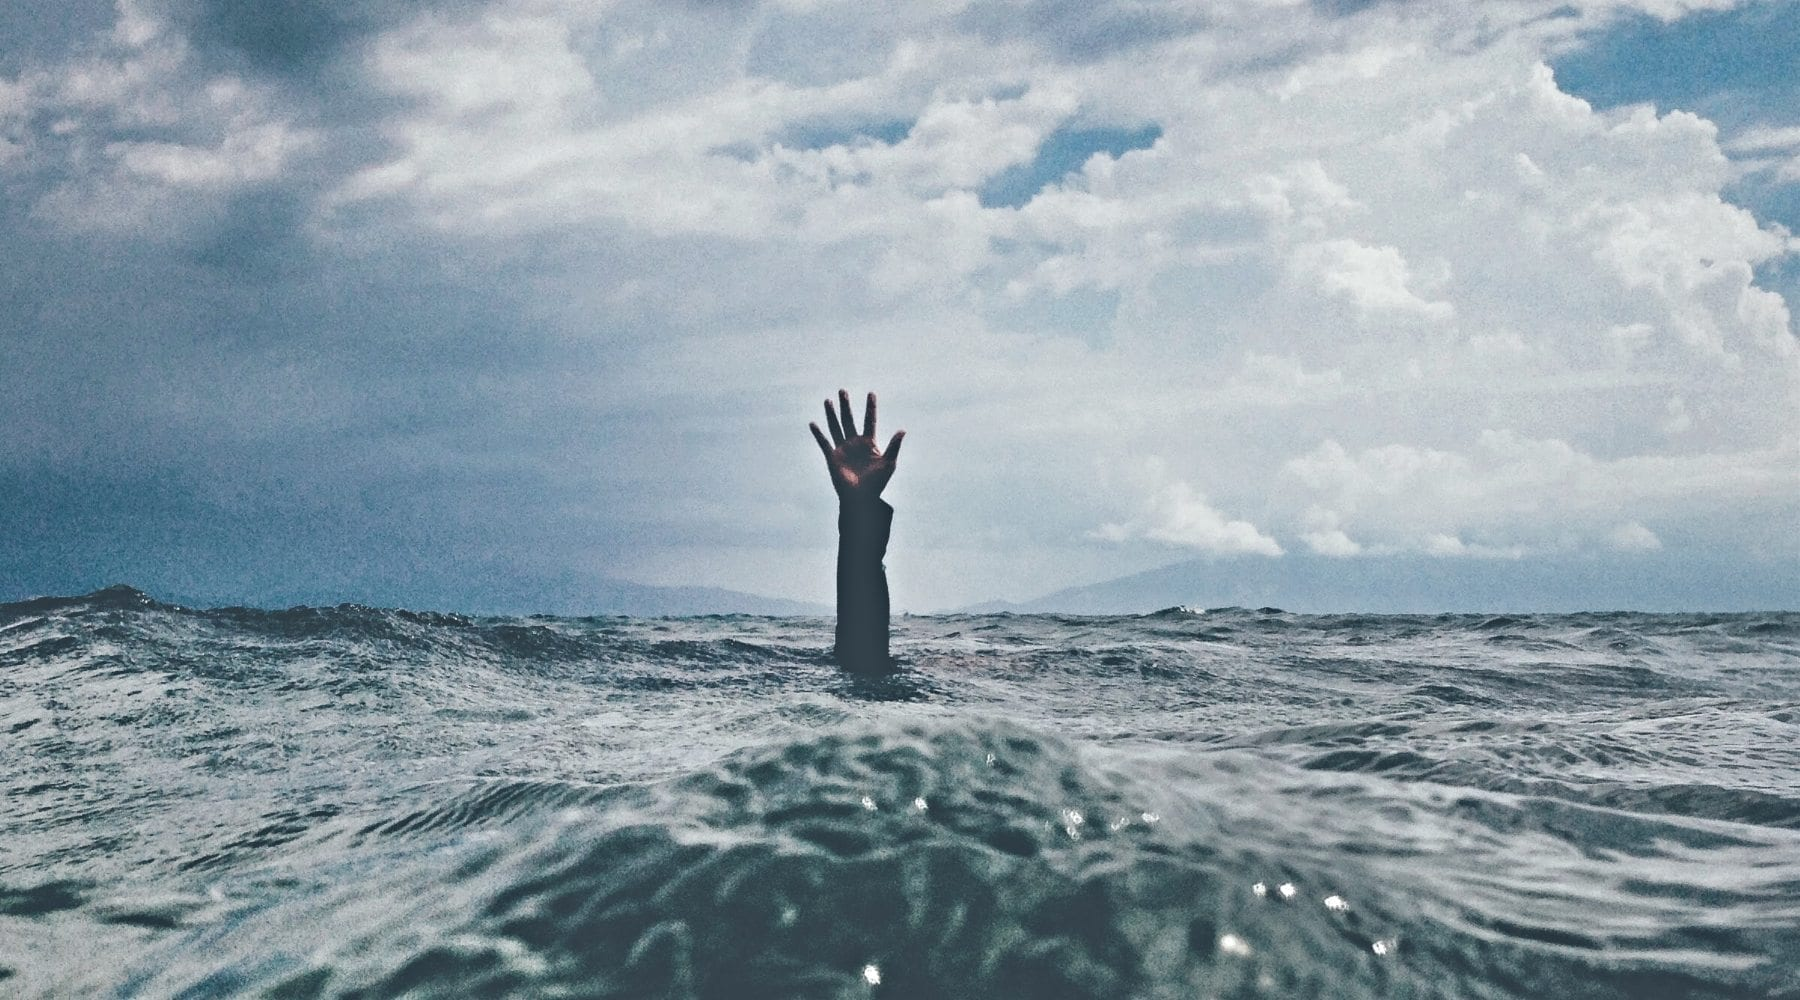 Arm raising up out of stormy sea